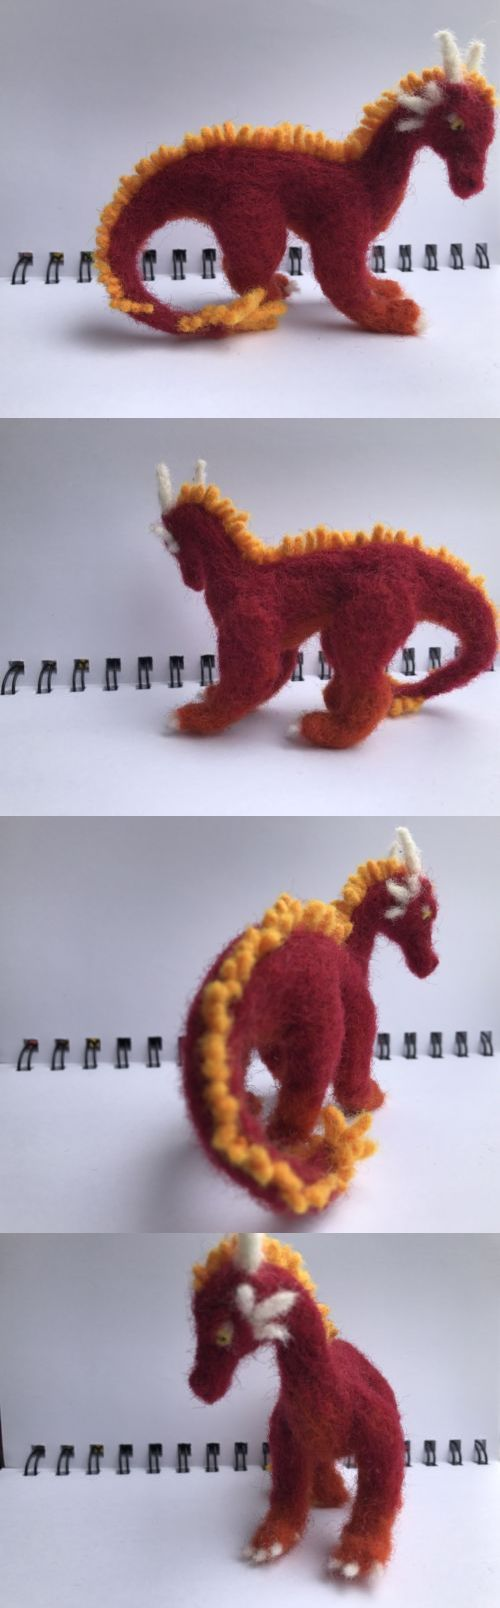 Wool and Needlefelted Items 160664: Needle Felted Dragon -> BUY IT NOW ONLY: $20 on #eBay #needlefelted #items #needle #felted #dragon #feltdragon Wool and Needlefelted Items 160664: Needle Felted Dragon -> BUY IT NOW ONLY: $20 on #eBay #needlefelted #items #needle #felted #dragon #feltdragon Wool and Needlefelted Items 160664: Needle Felted Dragon -> BUY IT NOW ONLY: $20 on #eBay #needlefelted #items #needle #felted #dragon #feltdragon Wool and Needlefelted Items 160664: Needle Felted Dragon -> #feltdragon